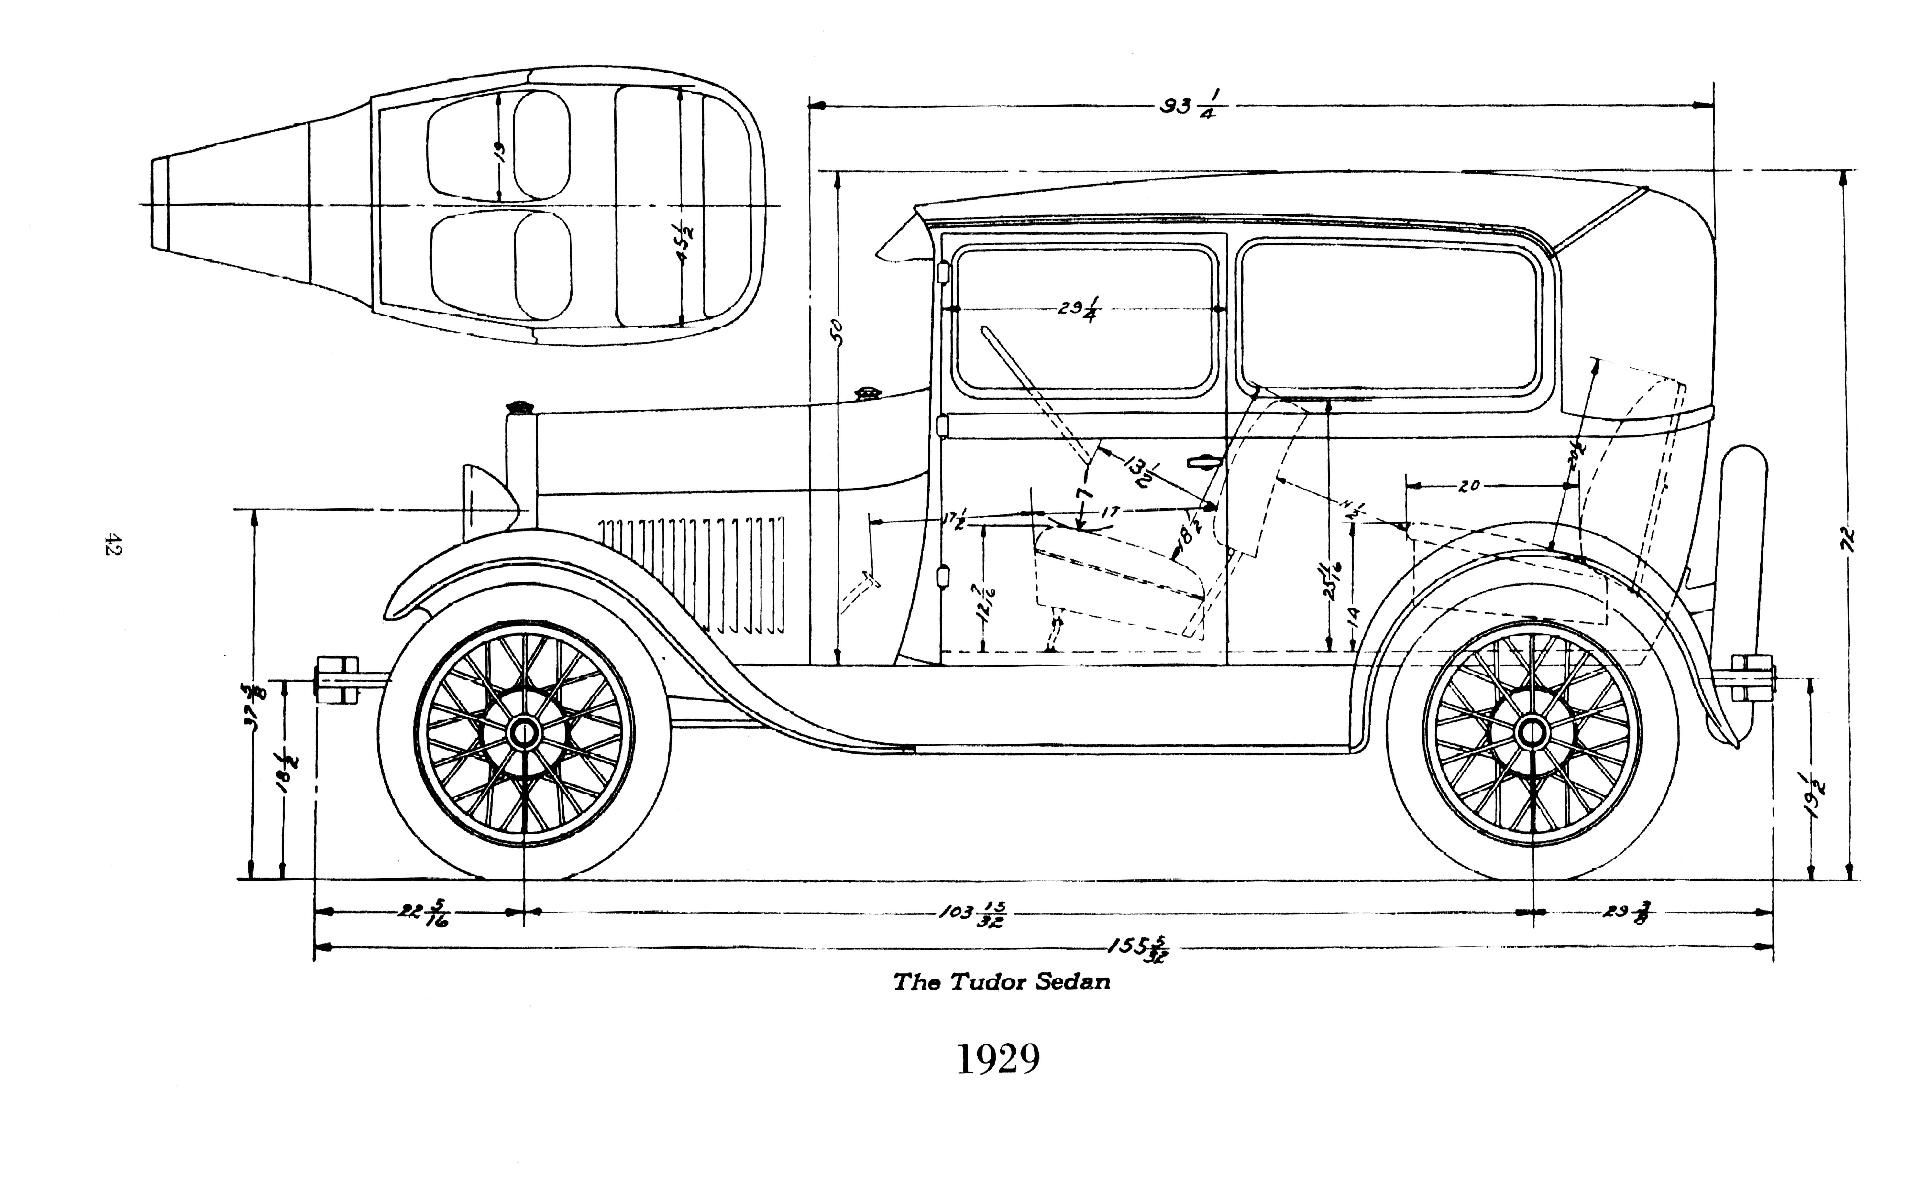 Model A Ford Engine Drawings